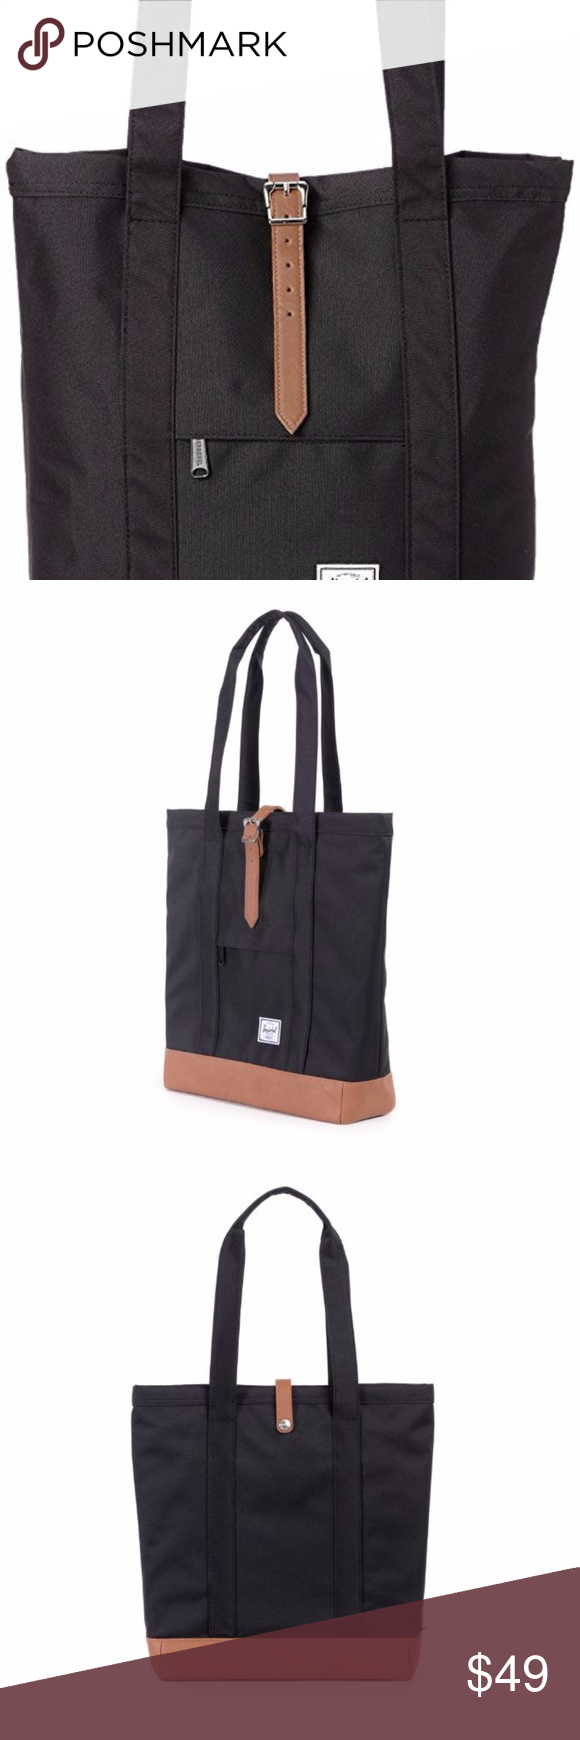 96f368d7c Herschel Supply Co. MARKET TOTE BLACK/TAN Pre-Owned. Used twice. EUC.  Details About Tote • Color: Black • Handle Color:Tan • Polyester • Imported  ...